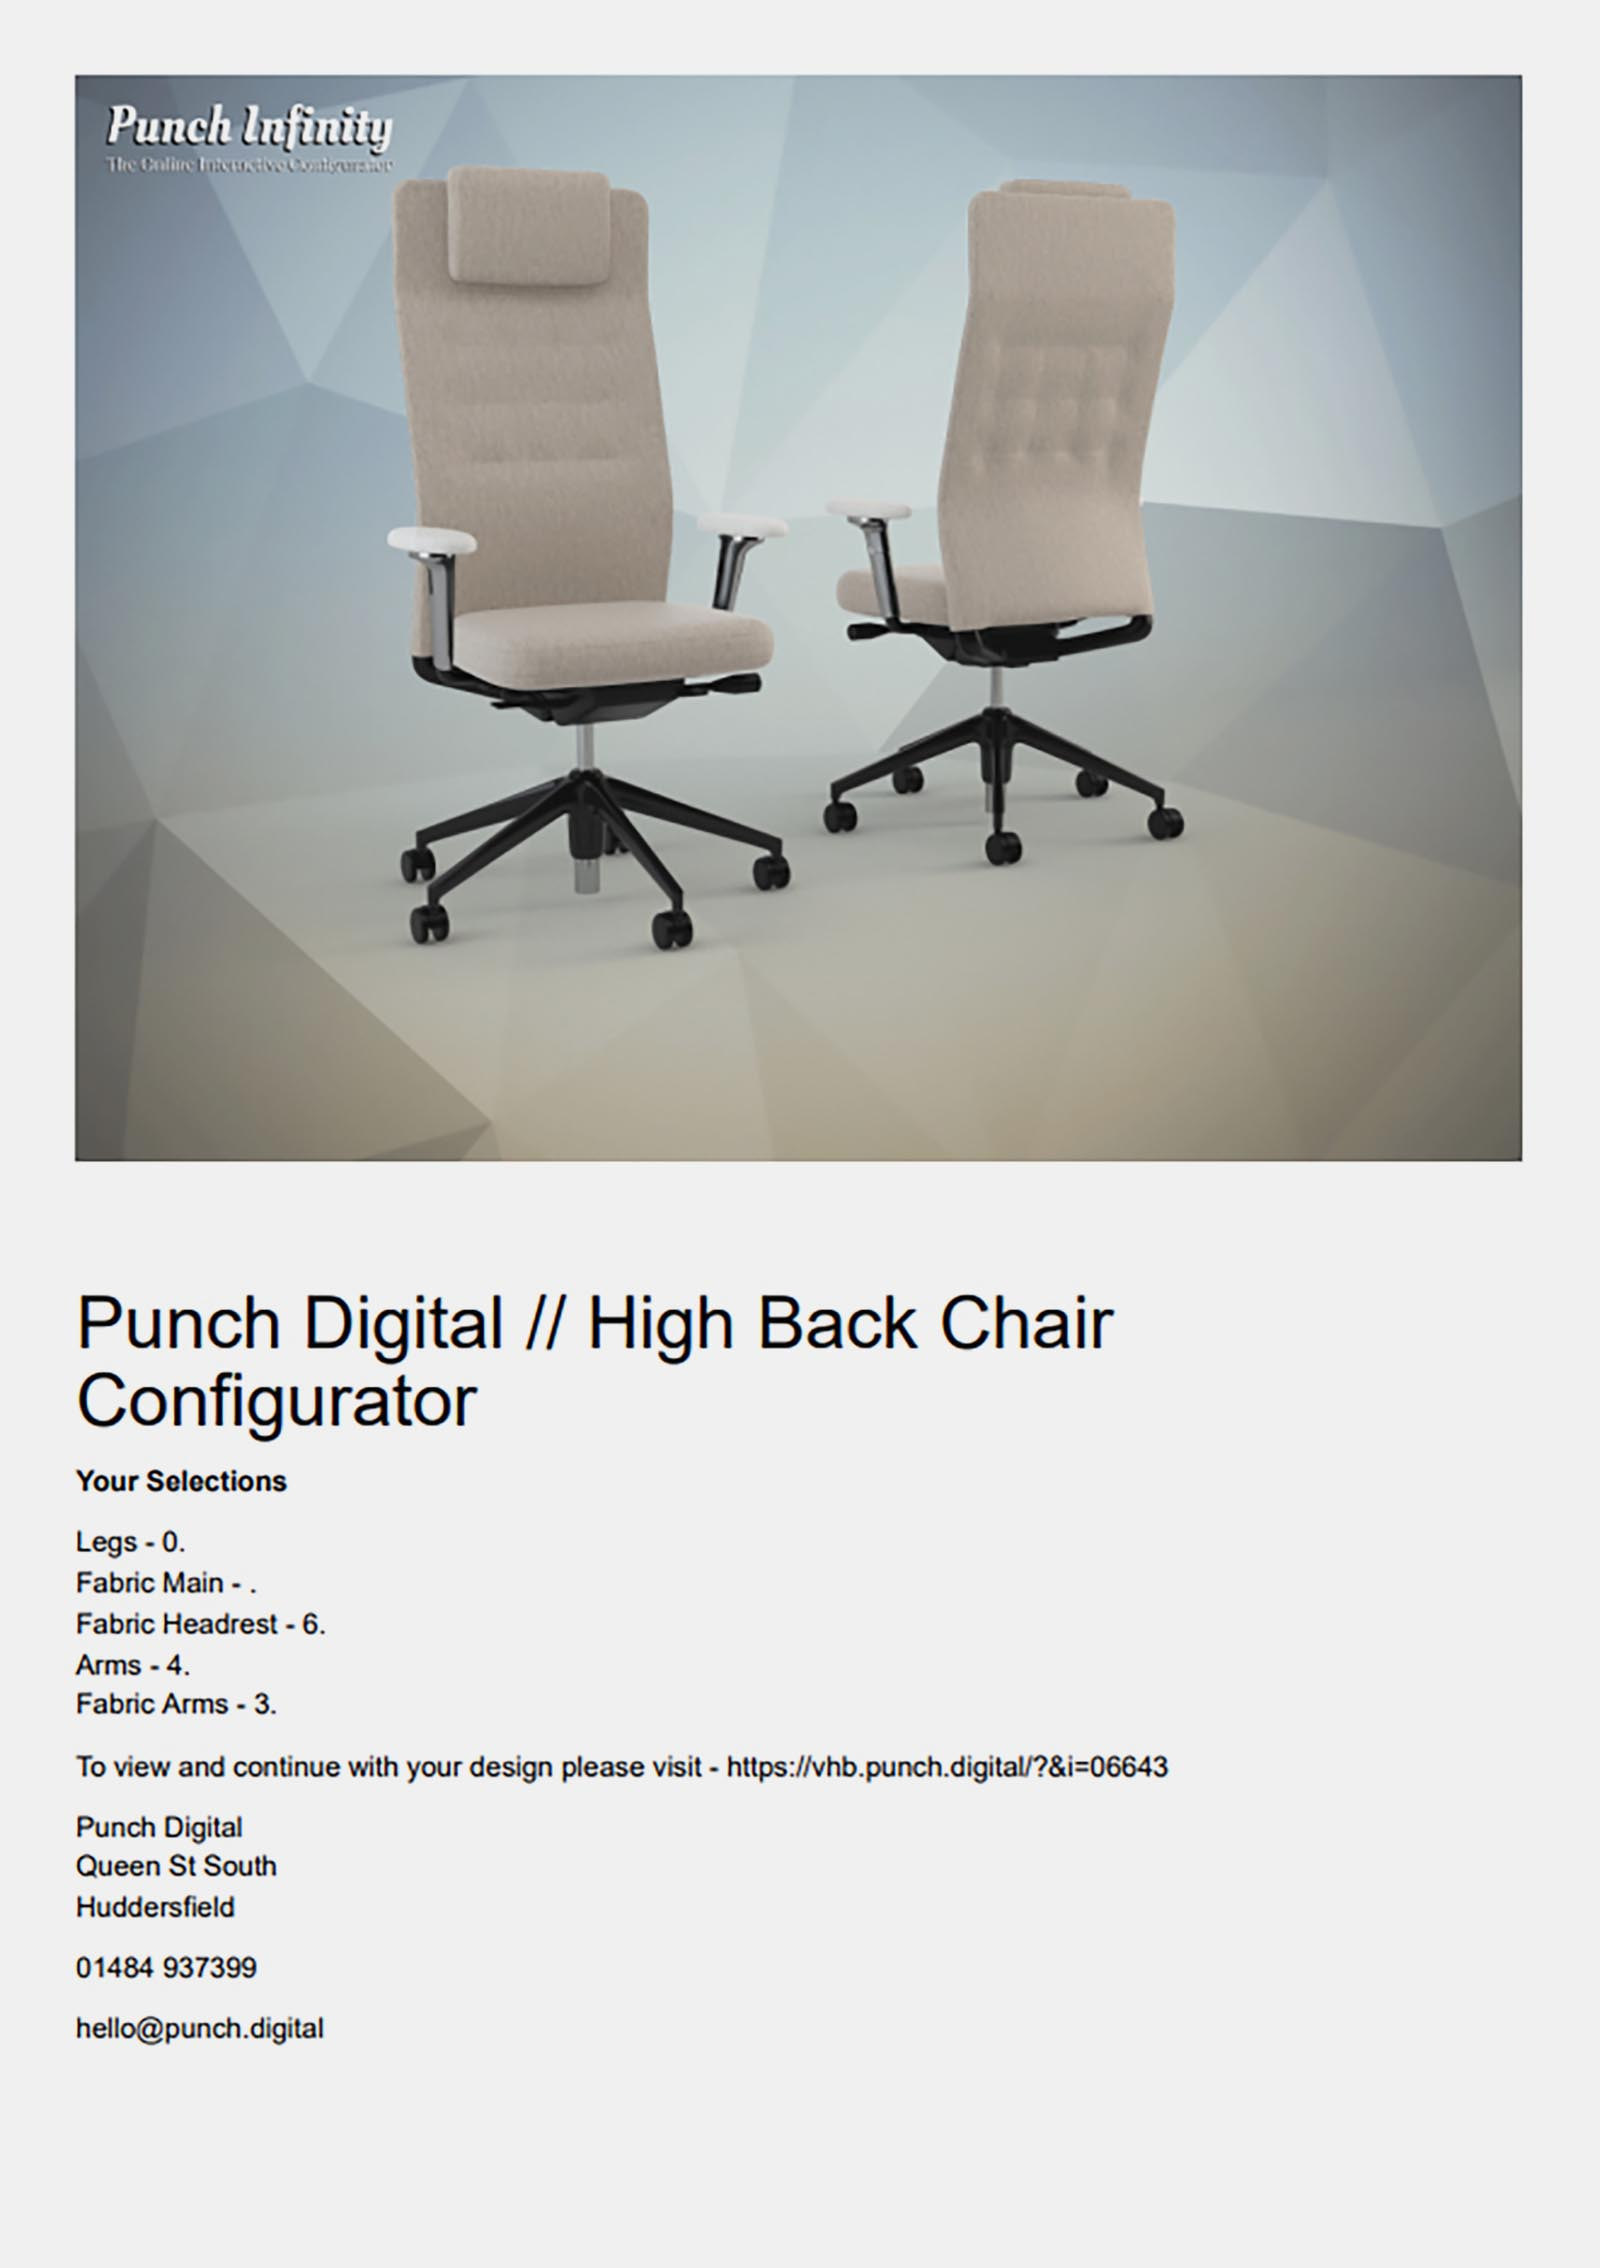 Vitra High Back Interactive Configurator Office Furniture Chair